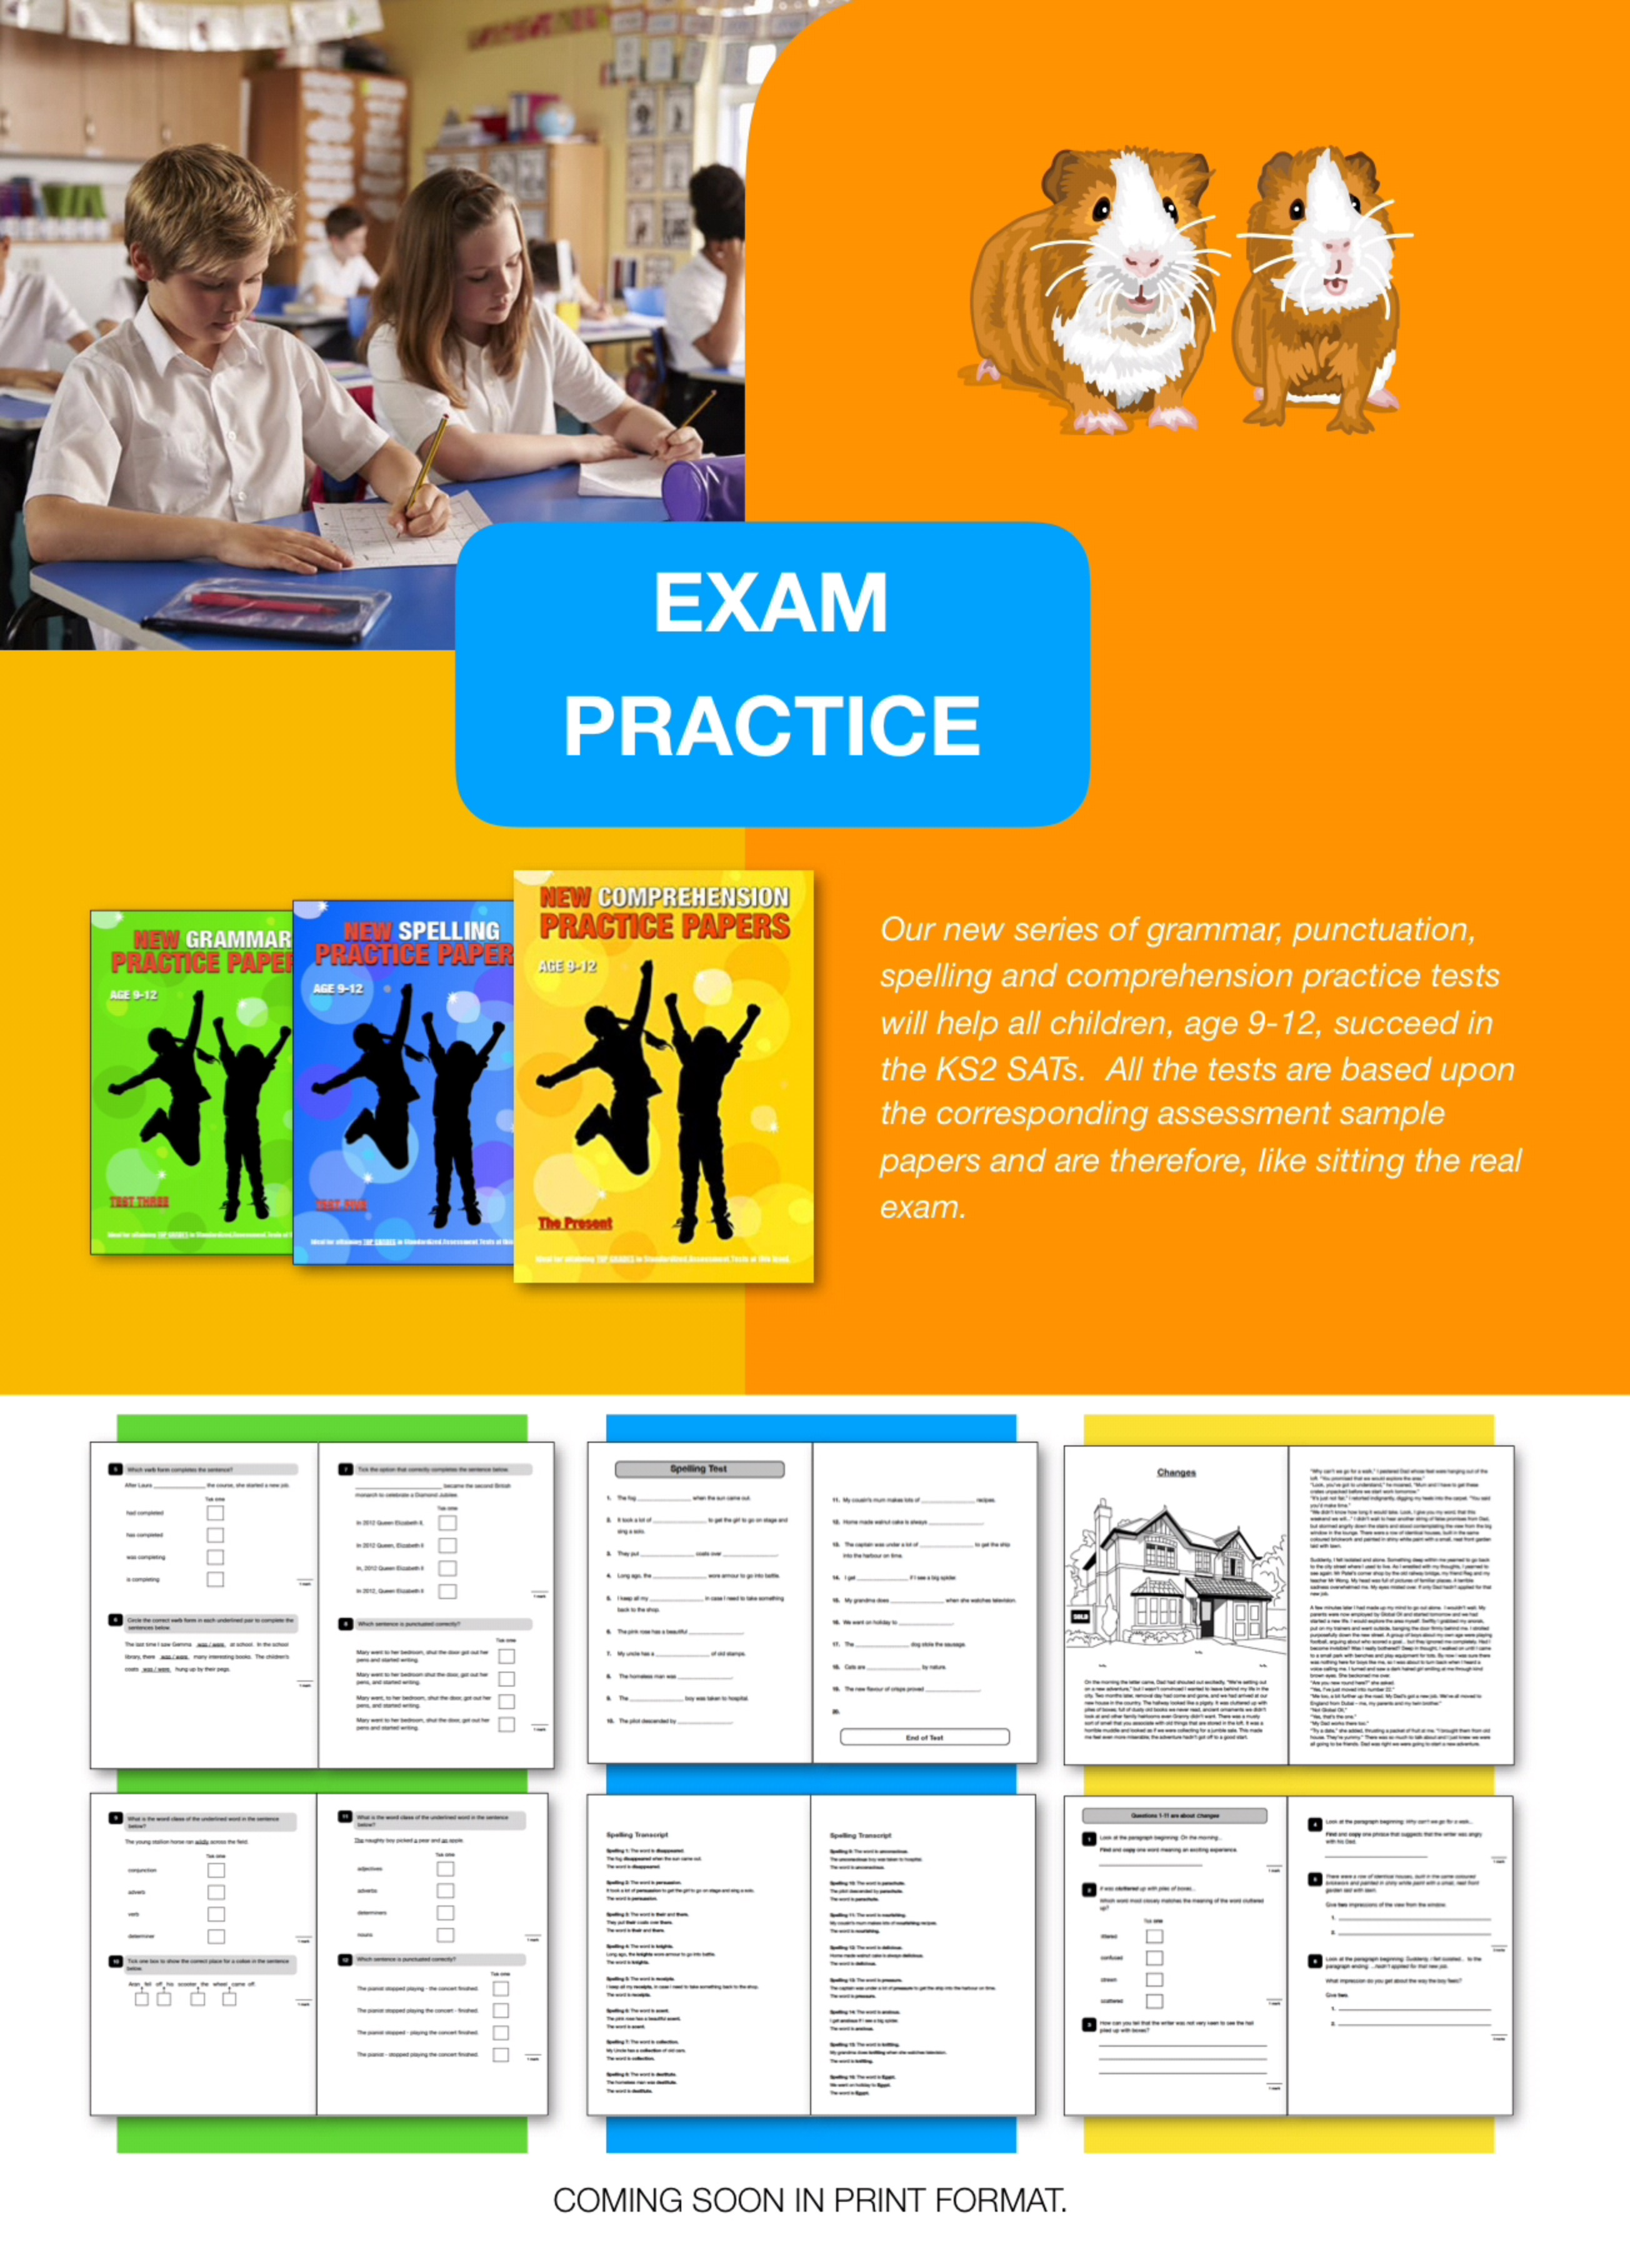 Highly Recommended: Learn Comprehension Skills 'The Present' 9-12 years